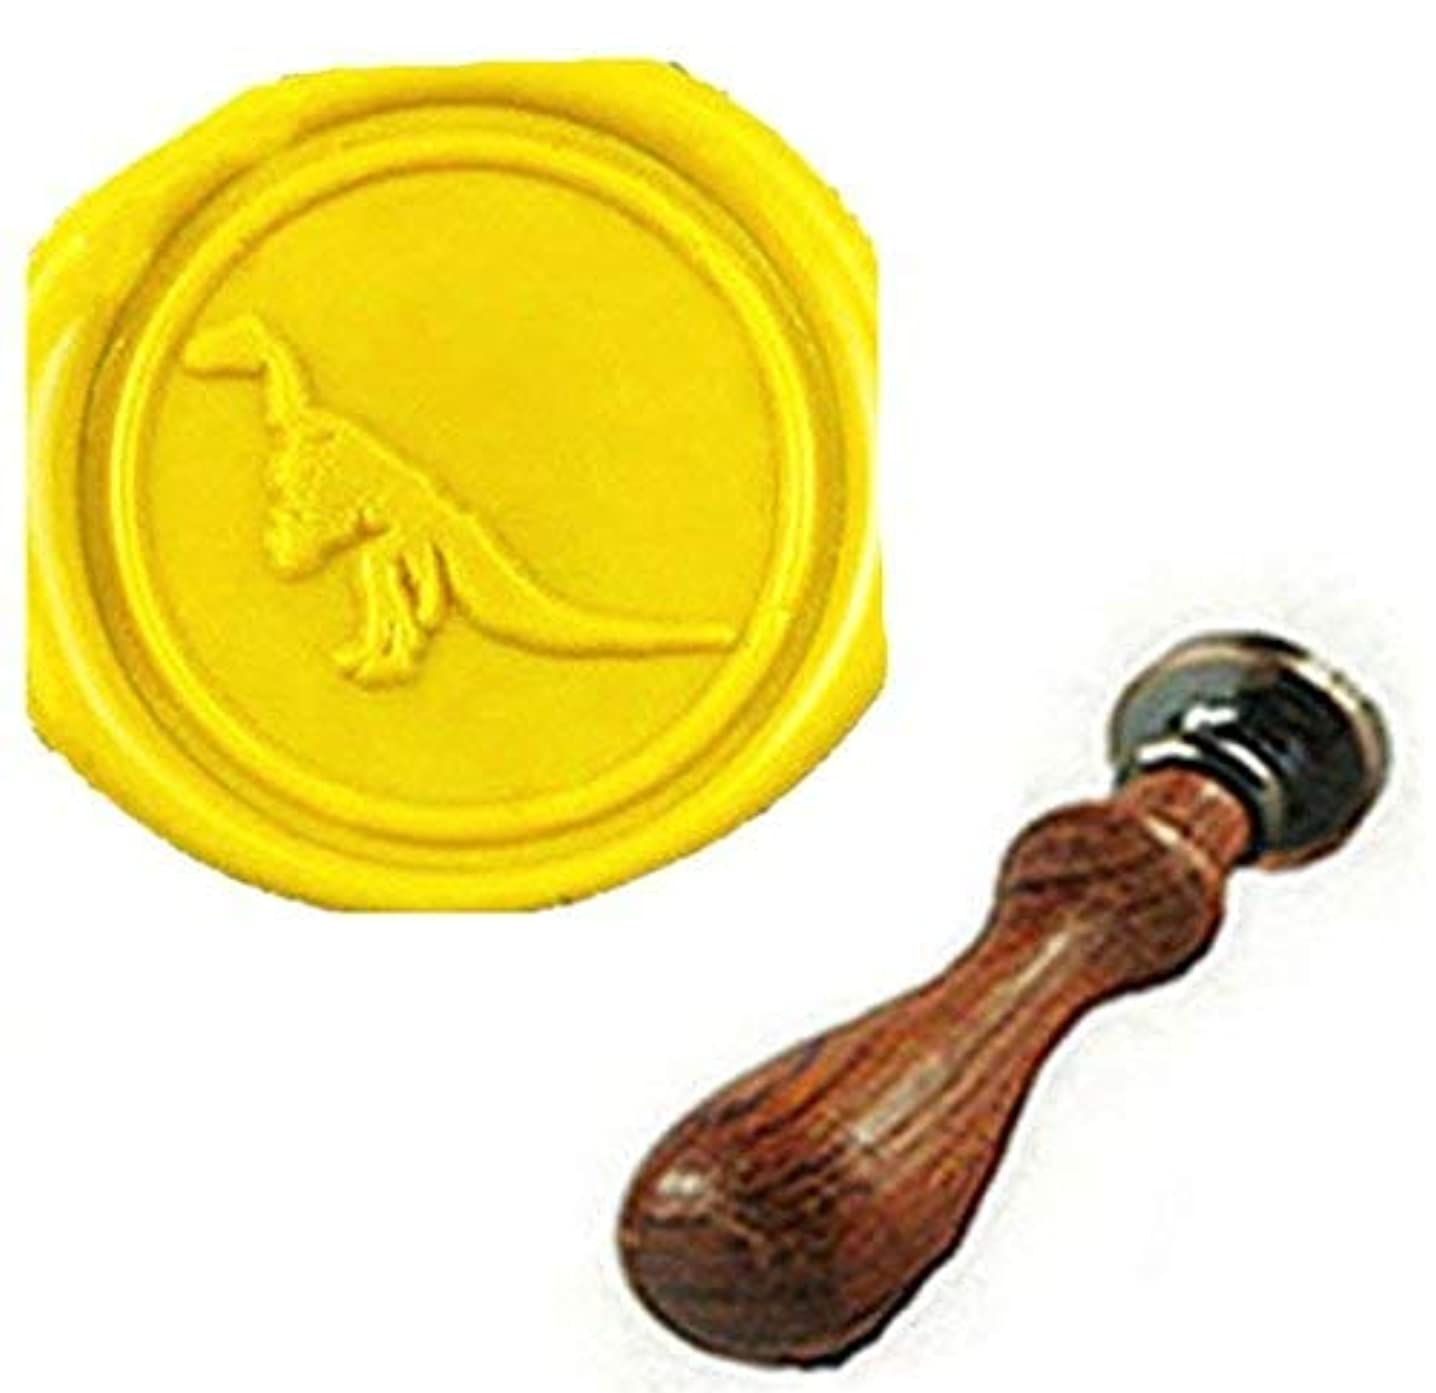 MDLG Dinosaur Wax Seal Stamp Wedding Invitation Gift Cards Packages Wax Seal Sealing Wax Sticks Stamp Rosewood Handle Set